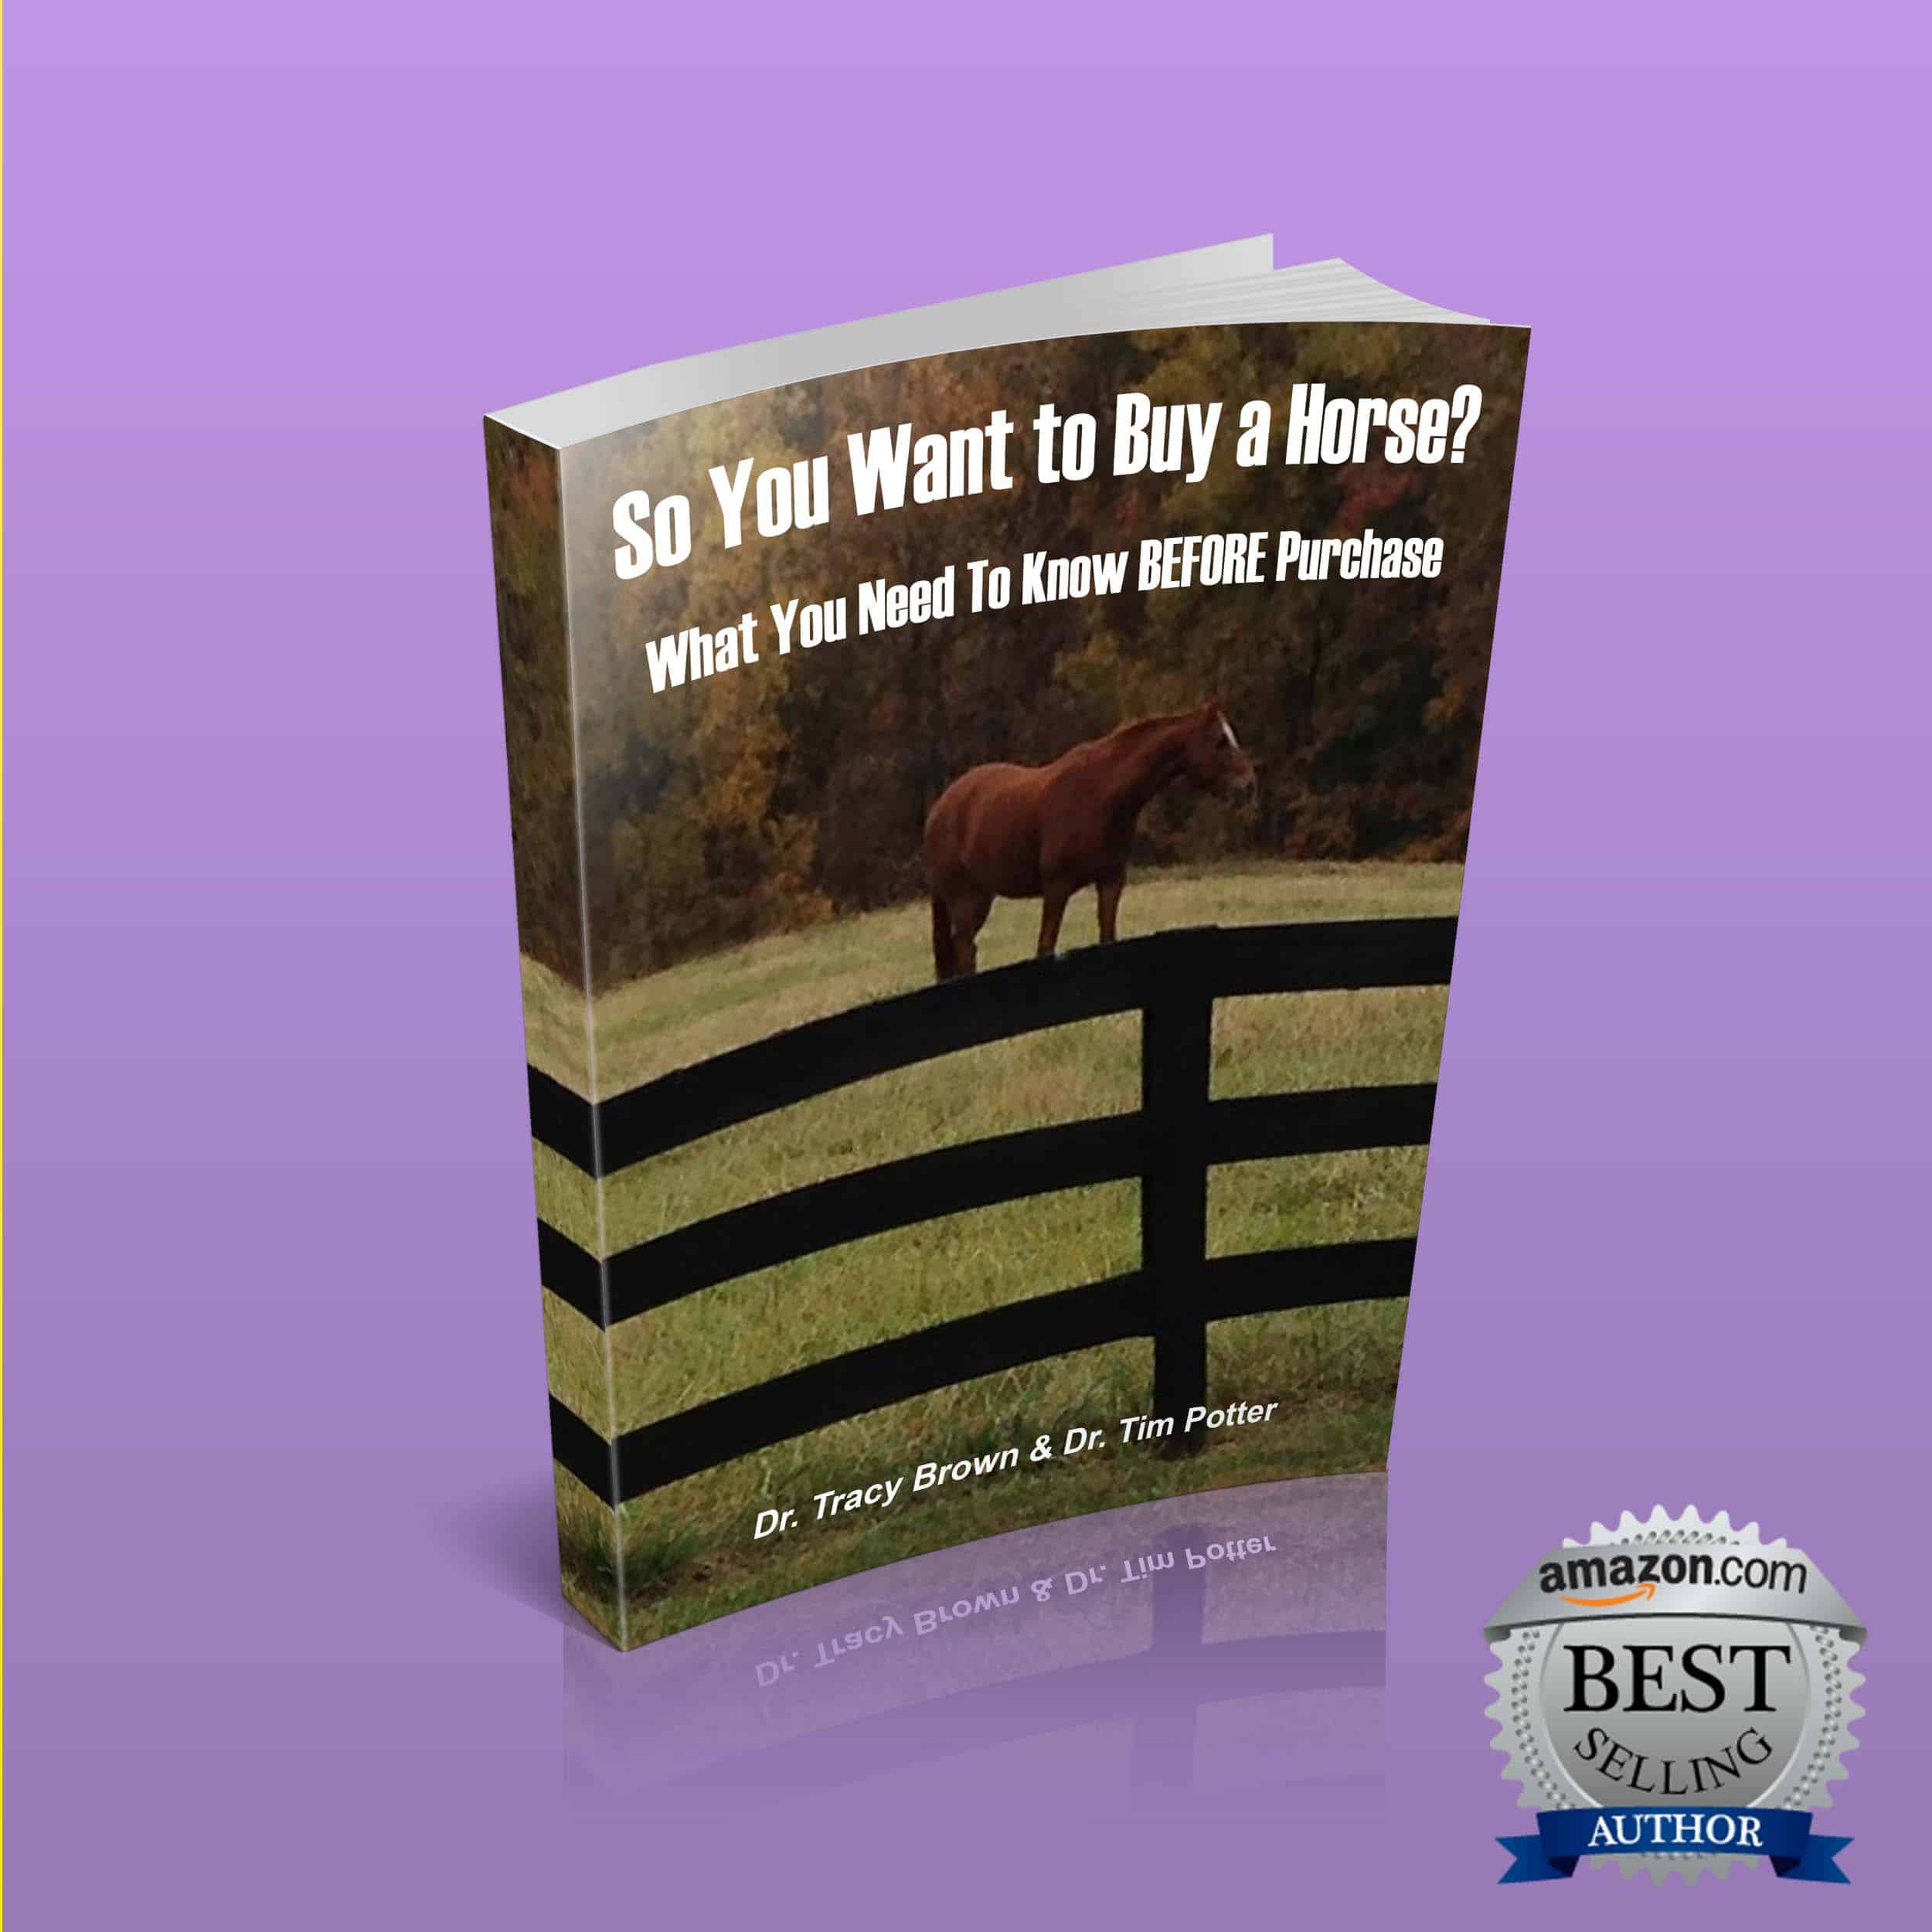 So You Want To Buy A Horse?